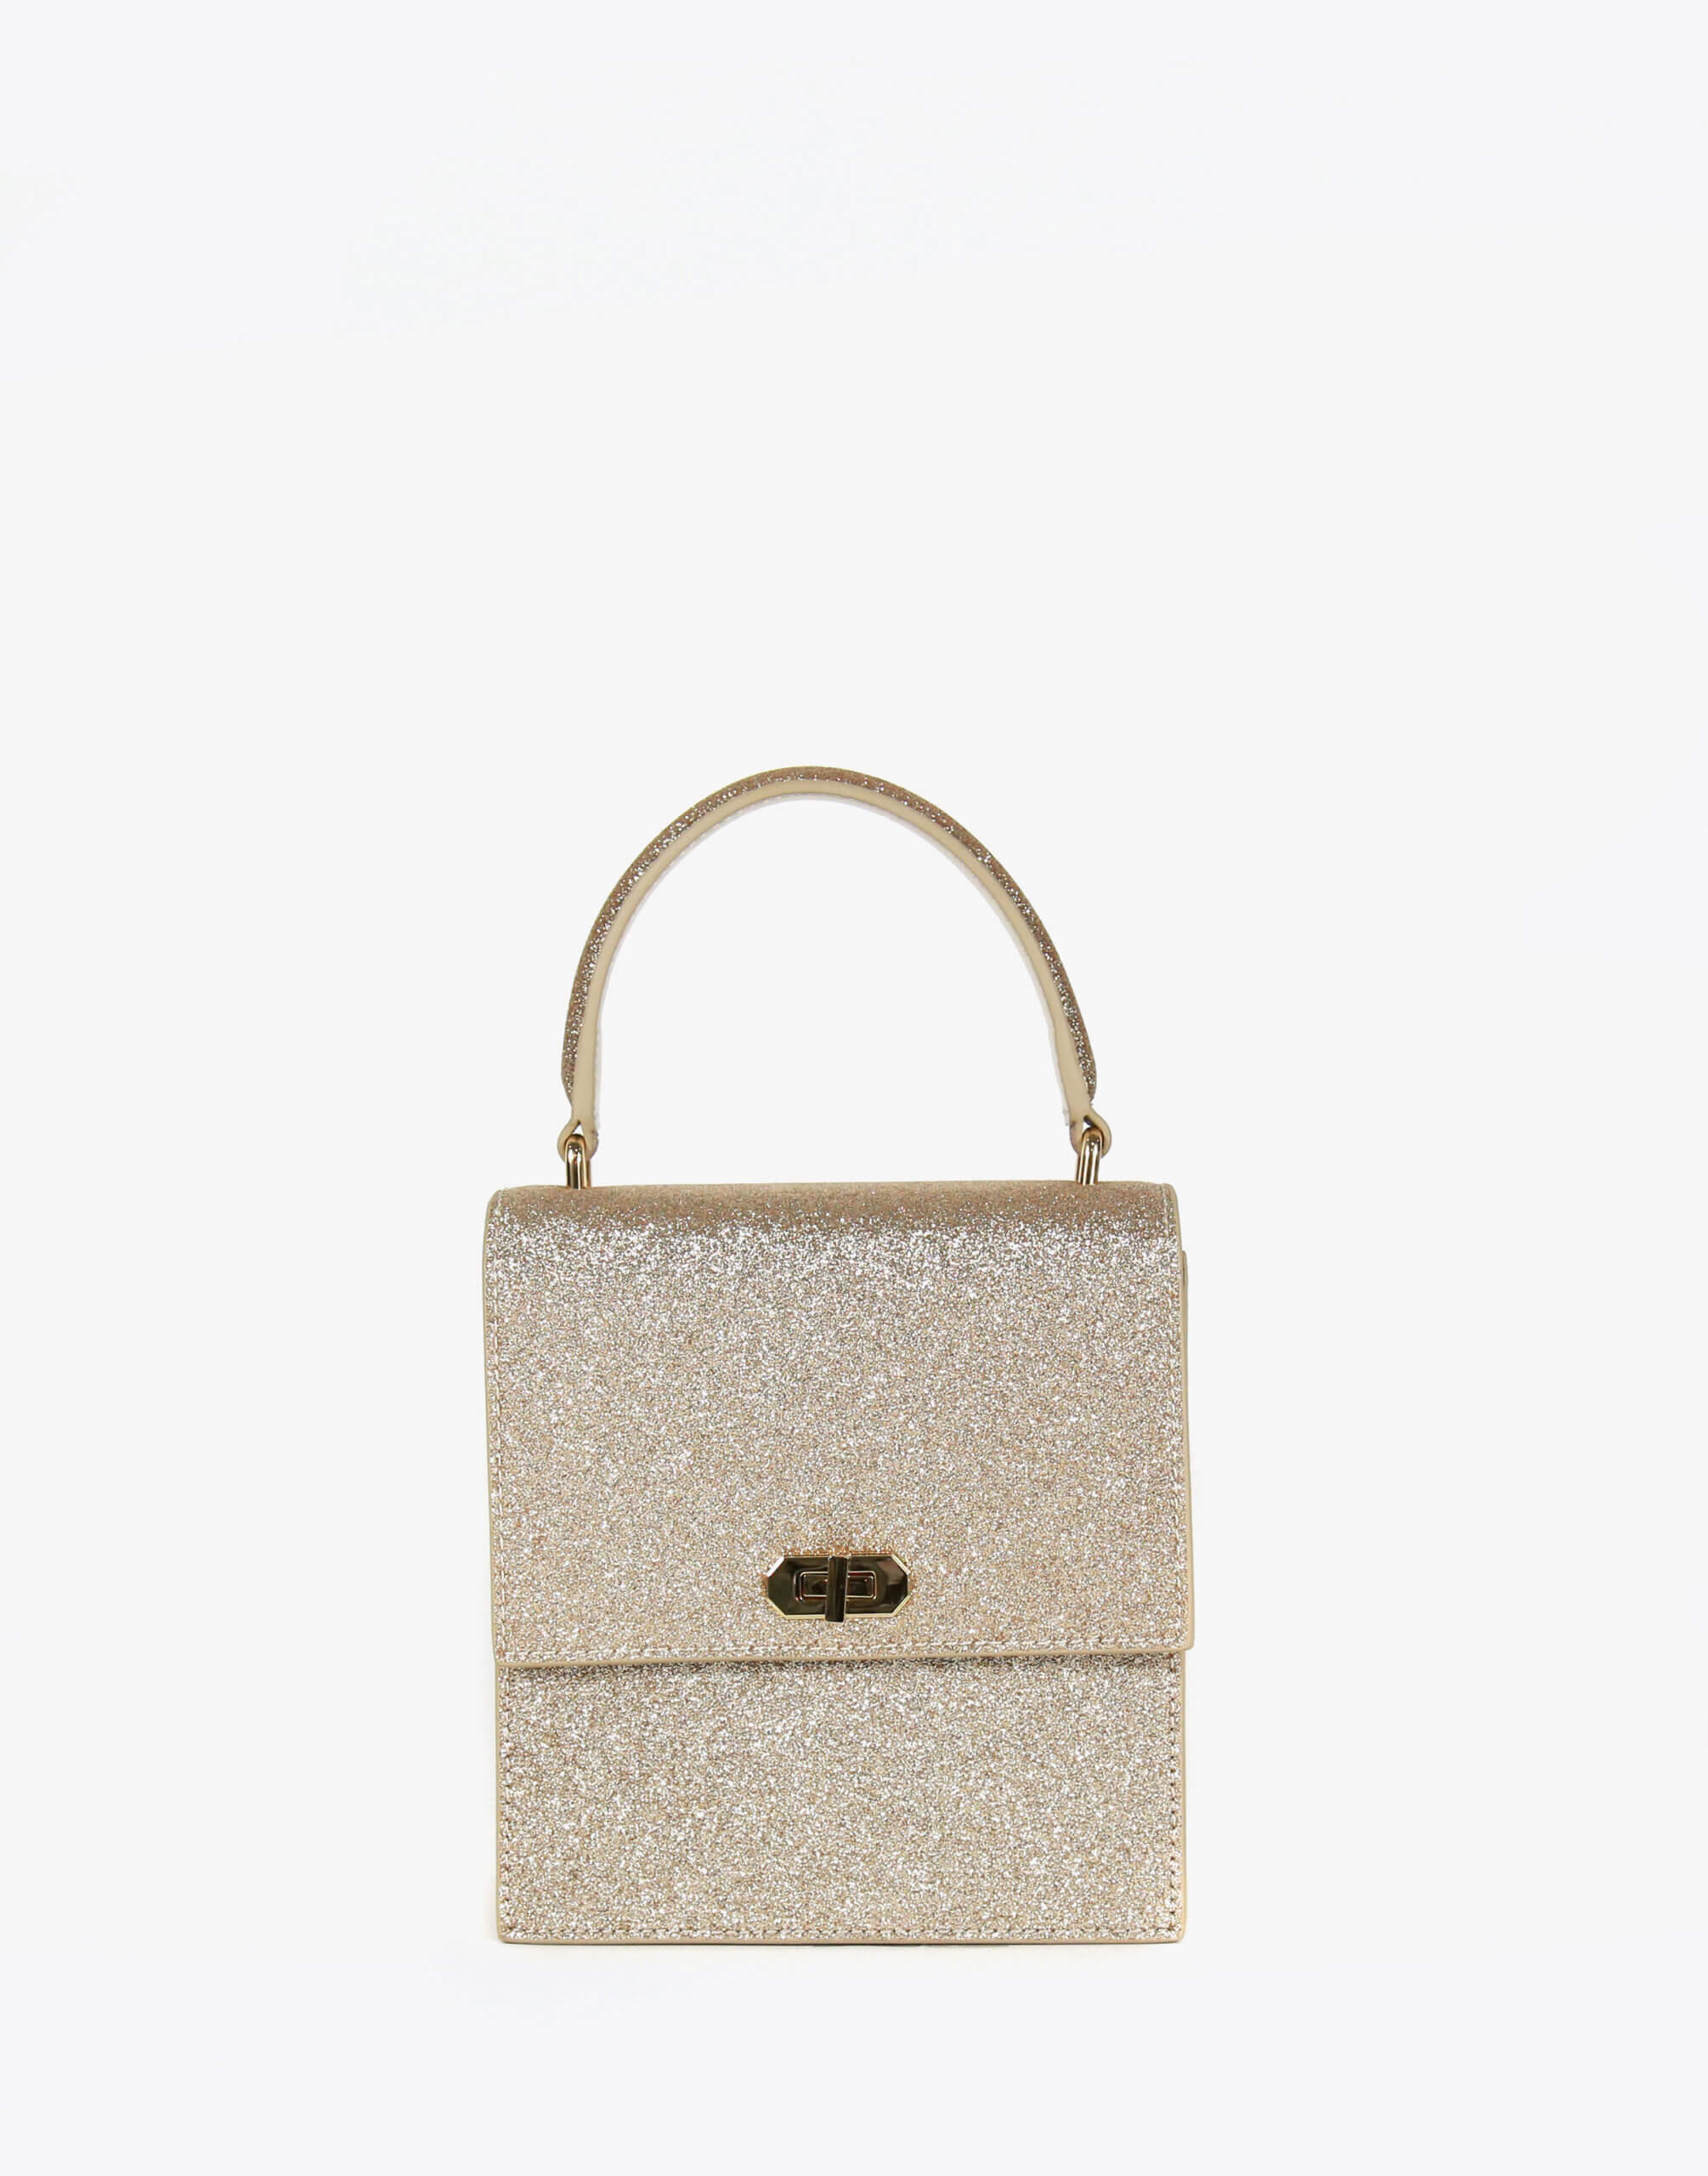 Neely & Chloe No. 19 Mini Lady Bag Front View Gold